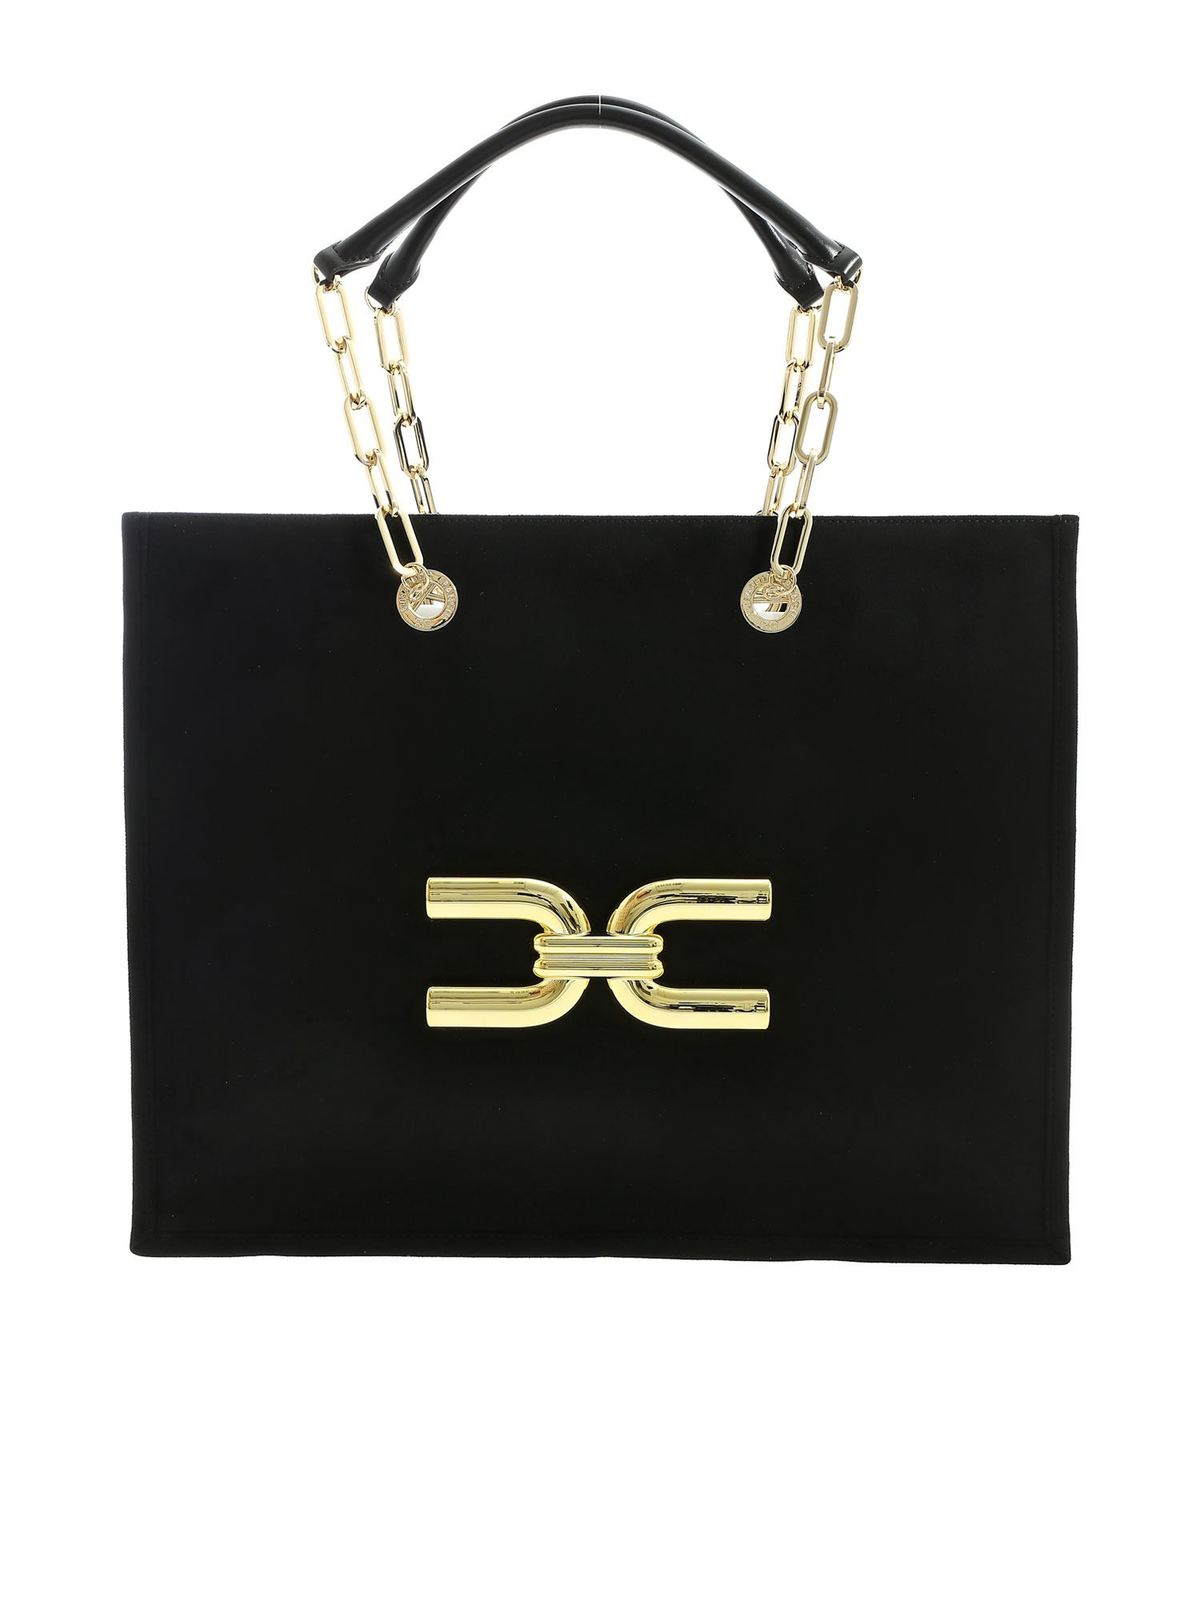 Elisabetta Franchi GOLDEN LOGO SHOULDER BAG IN BLACK